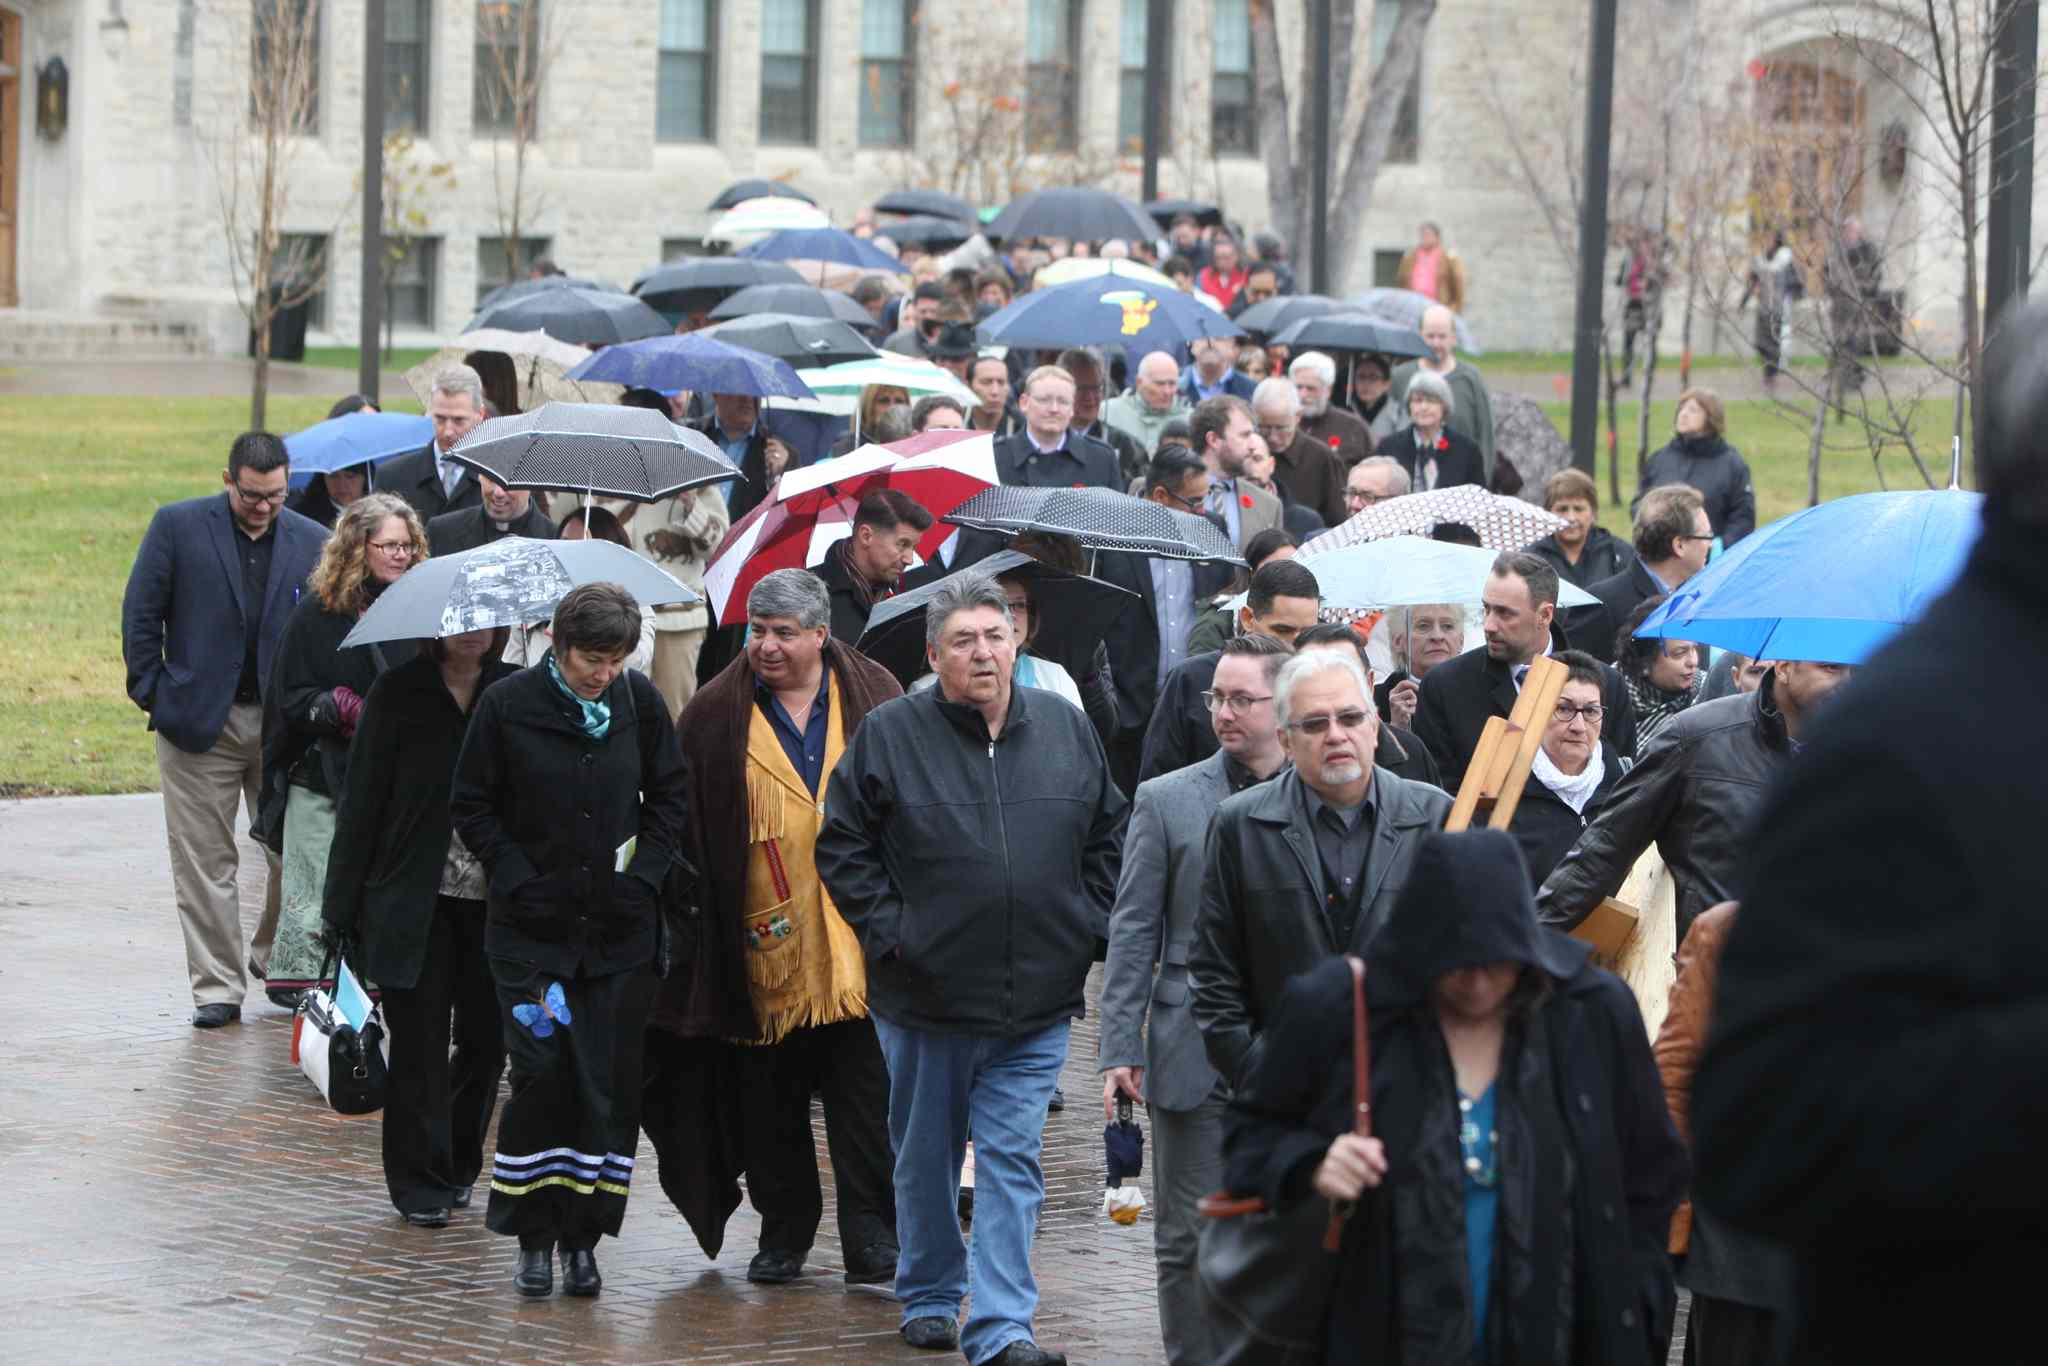 A large group marched to the University Centre for the grand opening of the National Research Centre.